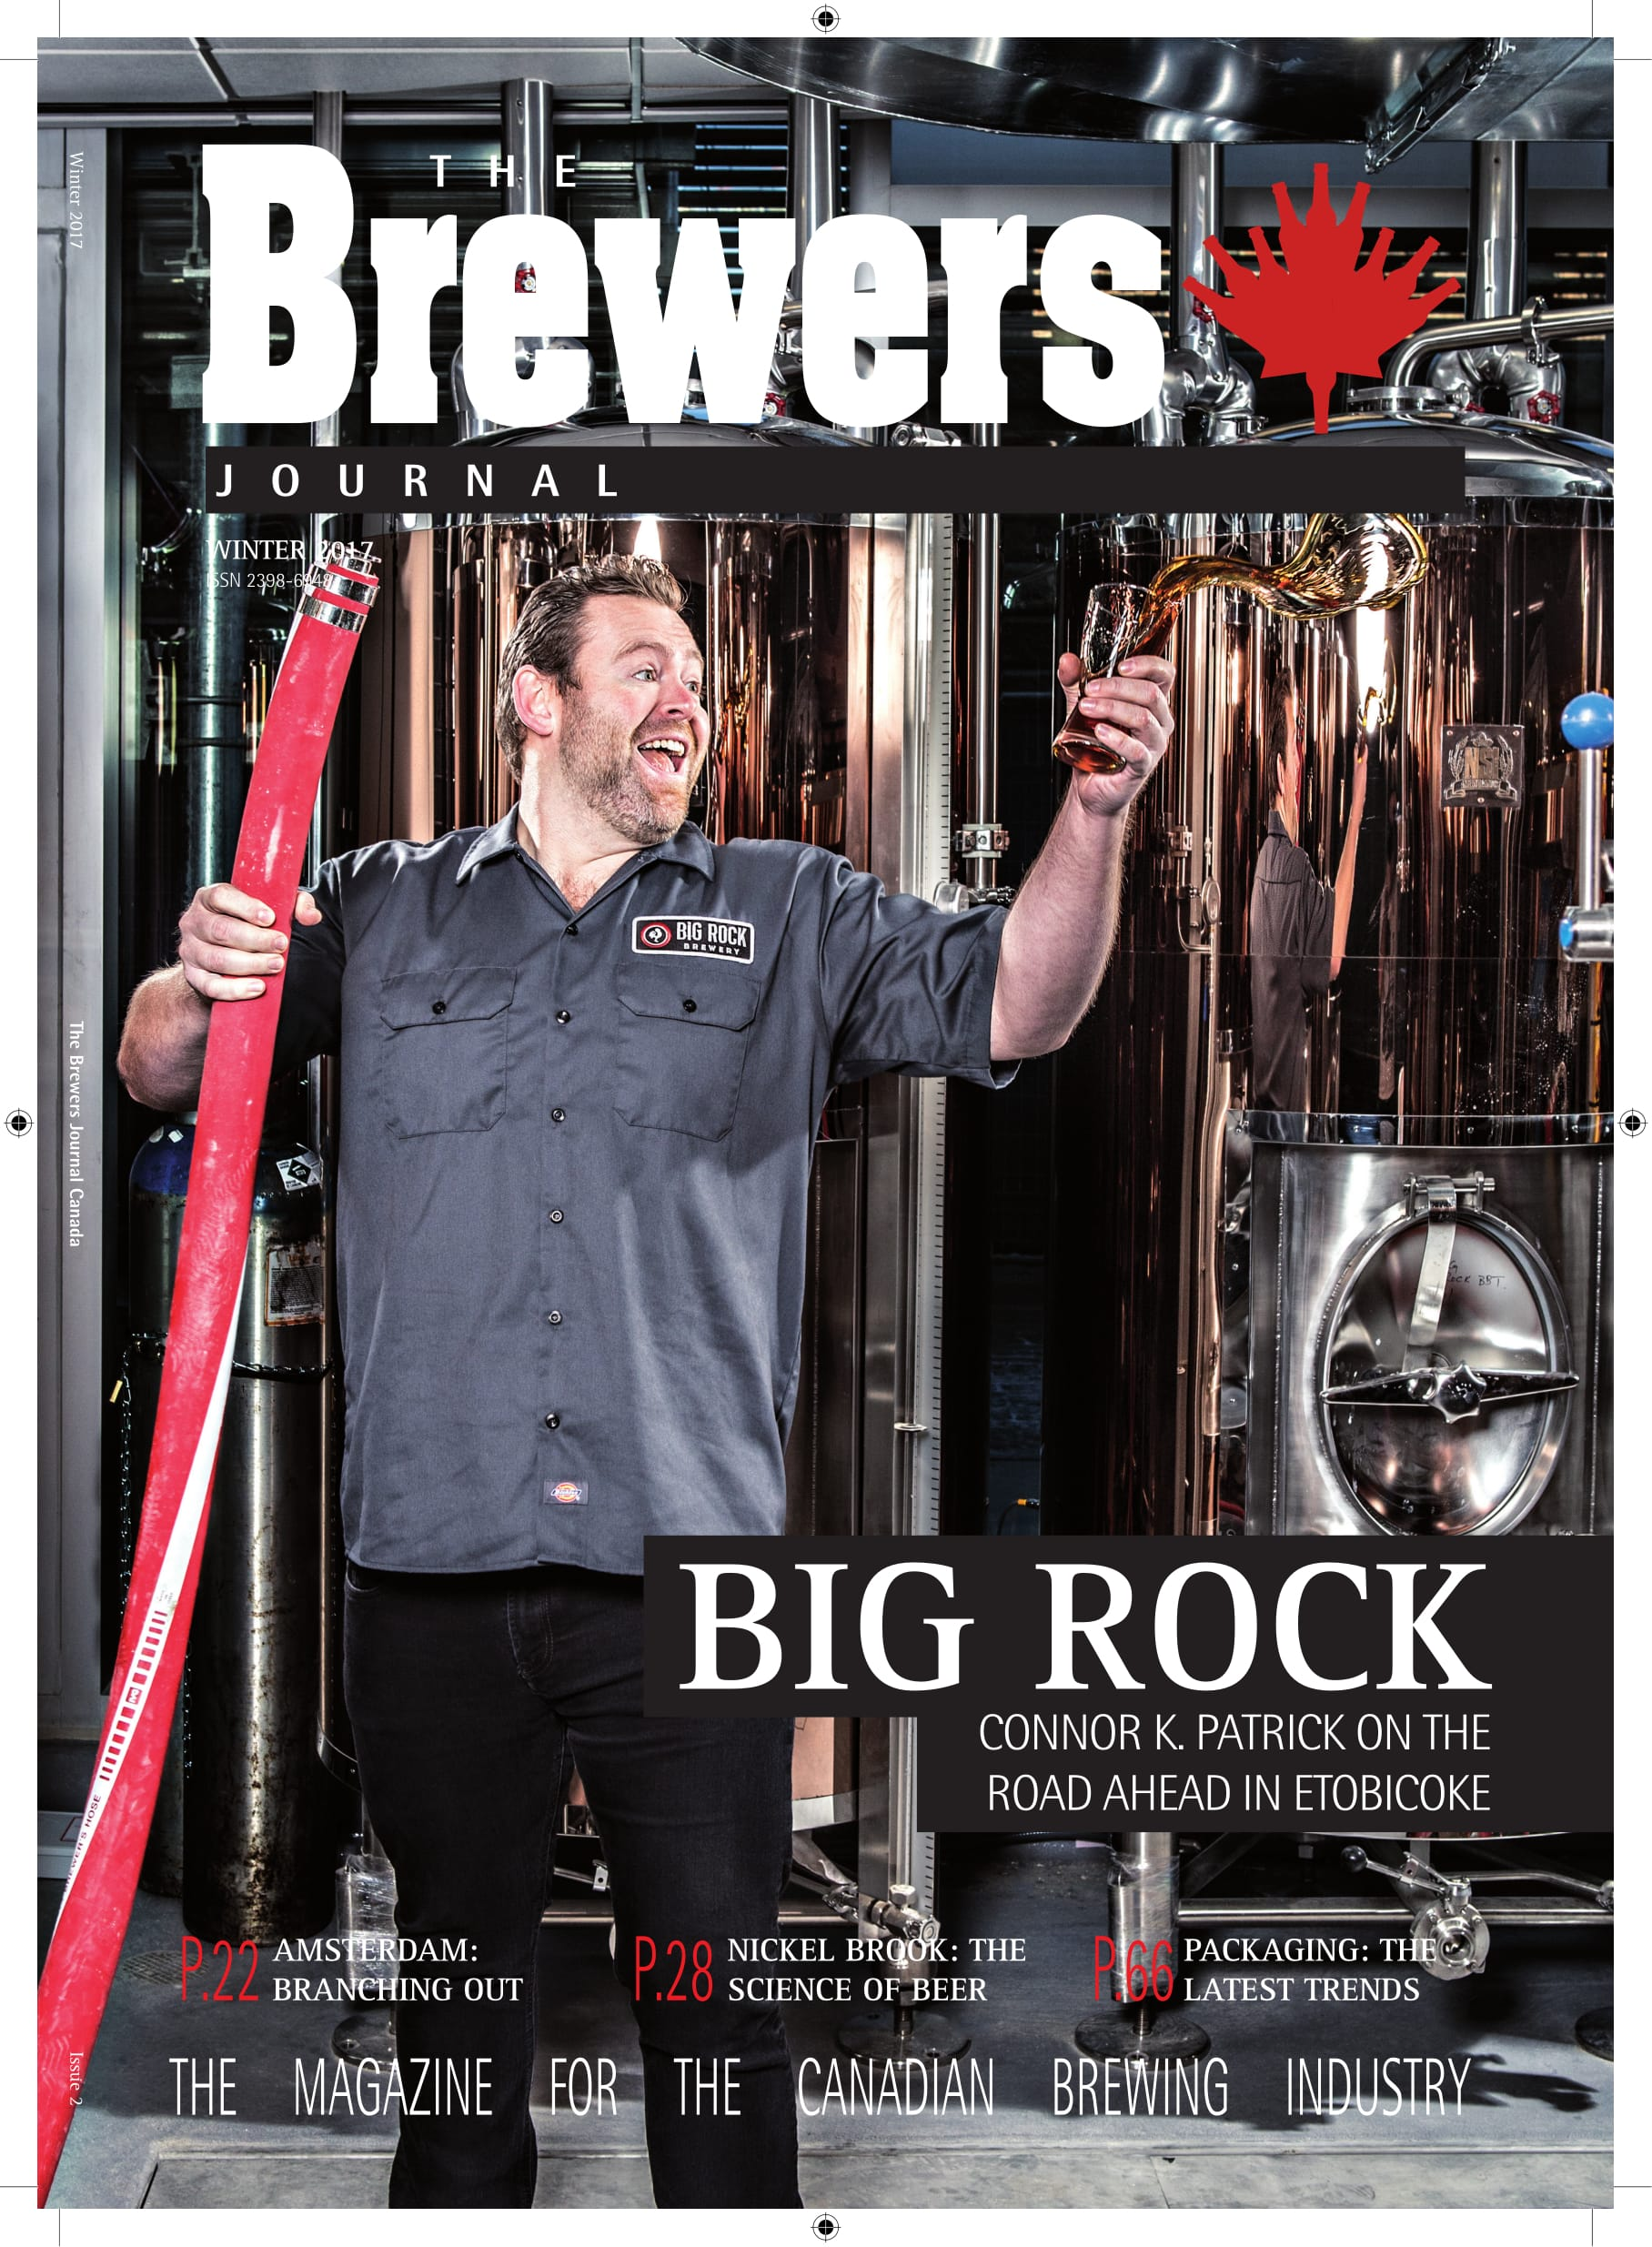 Nameless-Productions© Brewers-Journal-Canada-Winter 2016